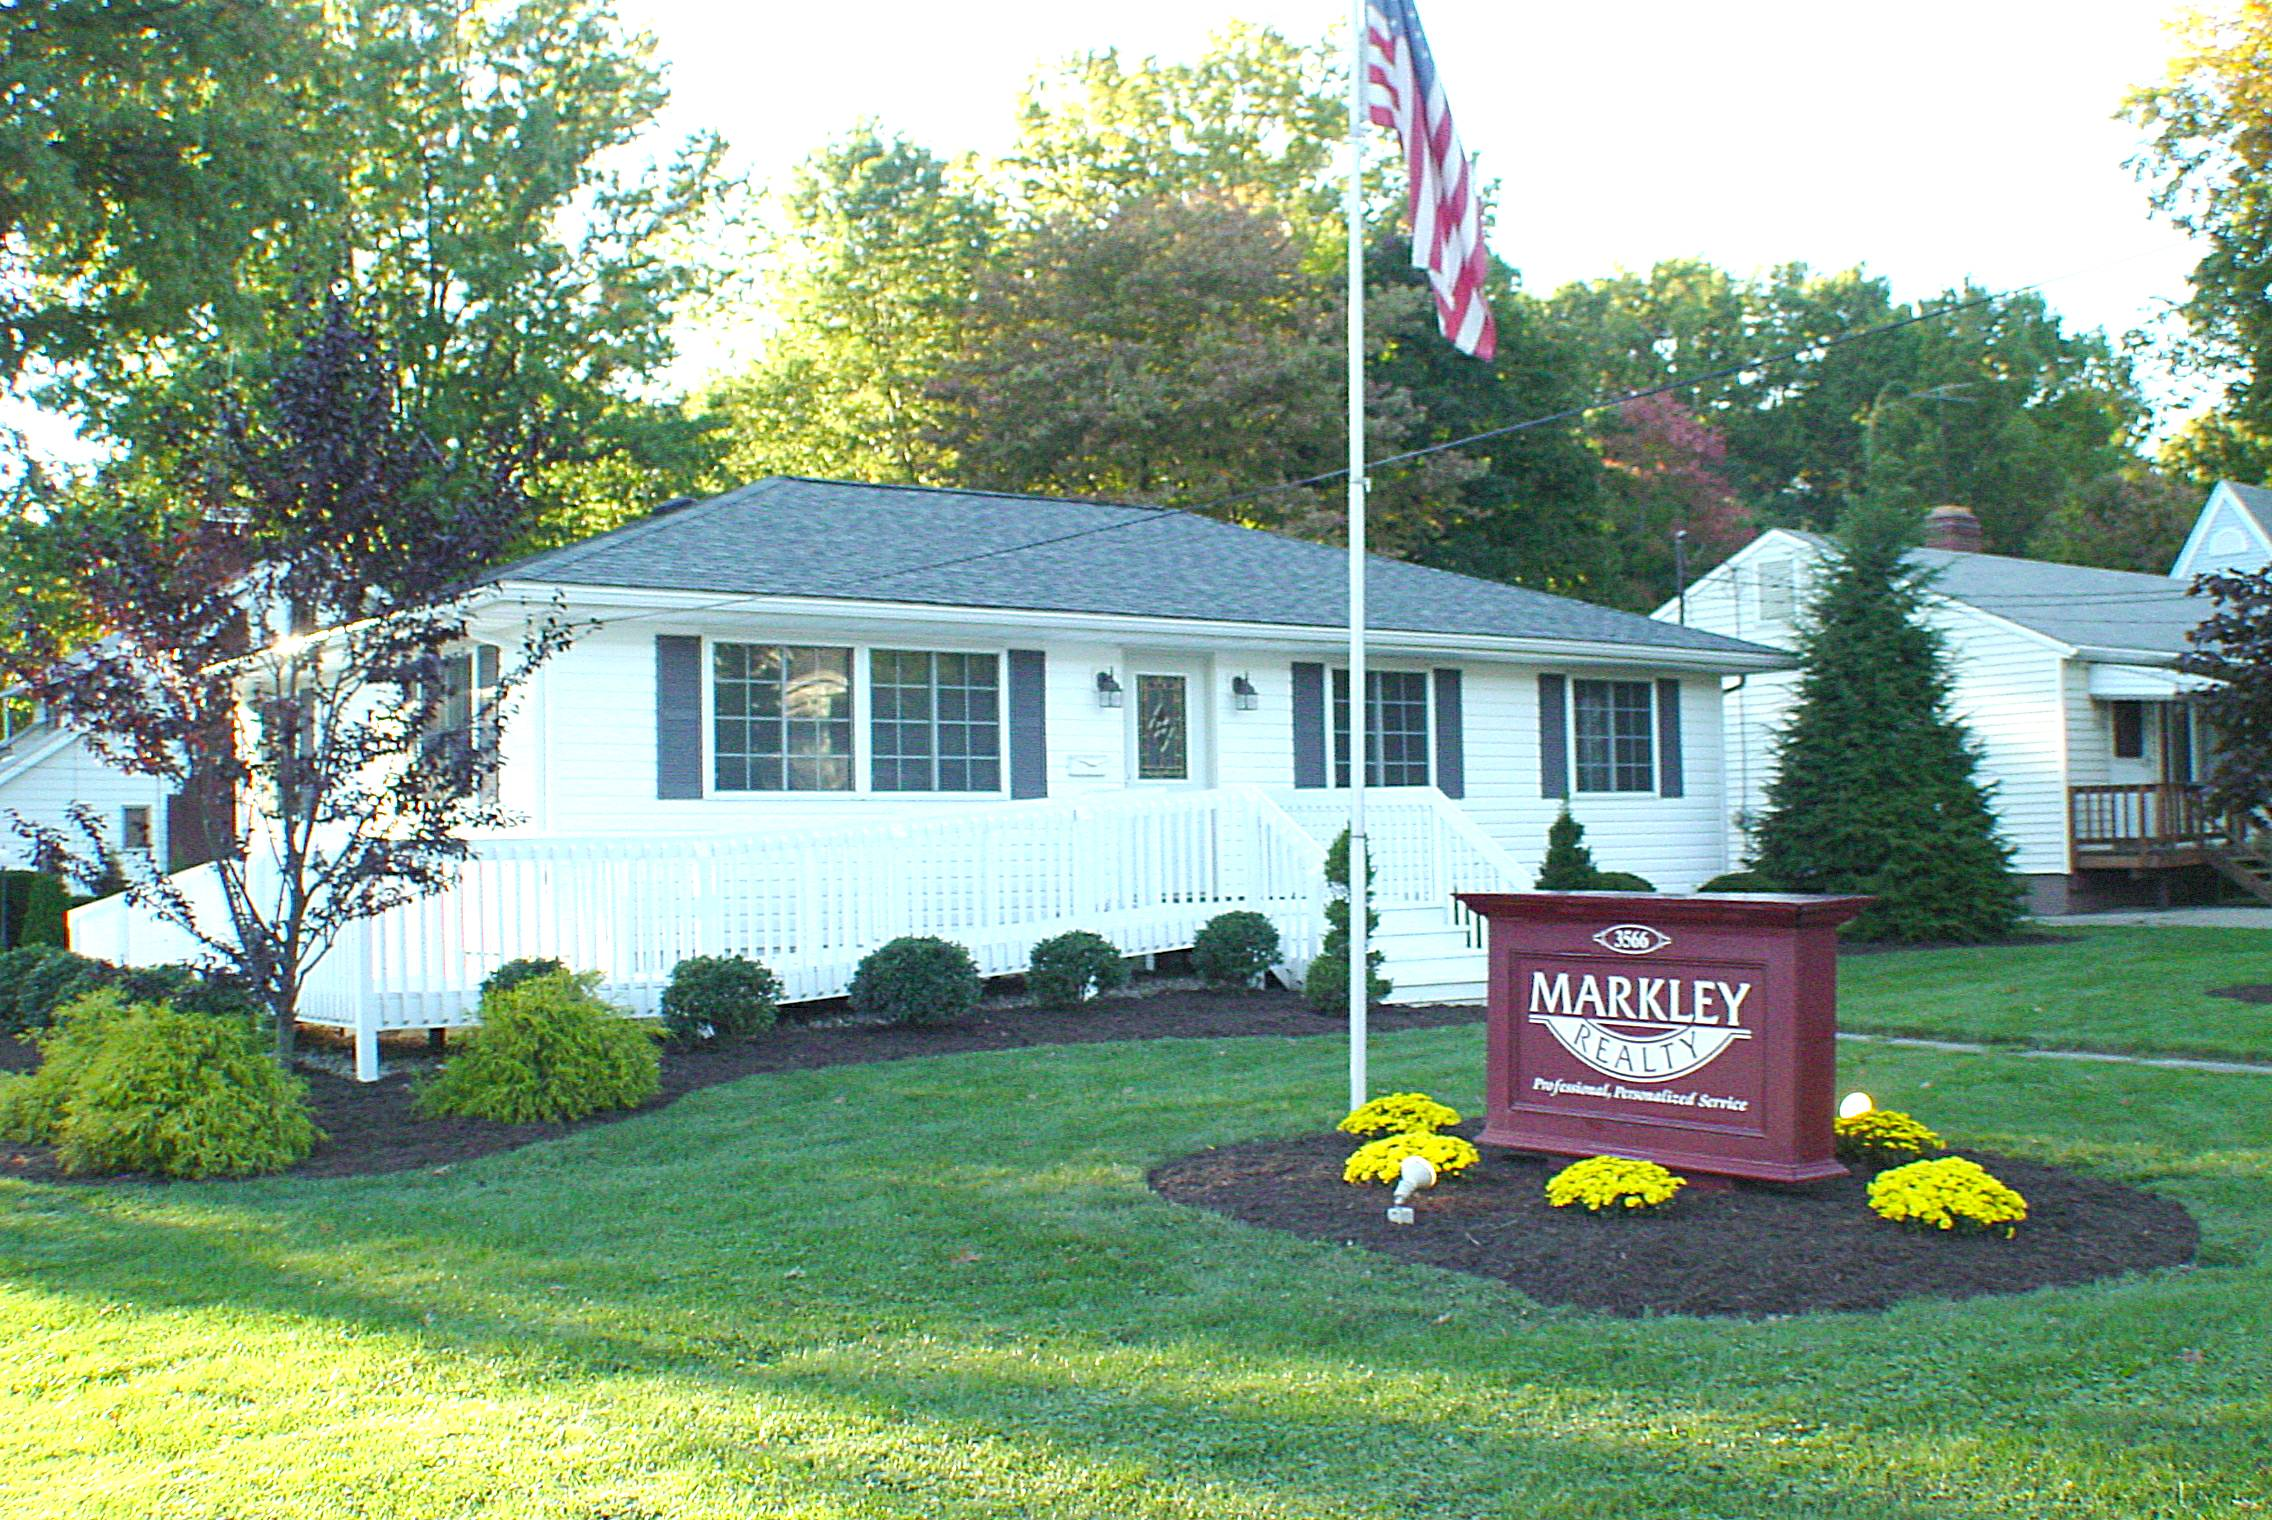 Welcome to Markley Realty's Website!  We hope you find this page useful in finding information on our Fantastic Listings,  information on our Experienced Realtors, information on Quality Lenders, and a host of other information that will make your Home Buying or Selling experience a good one!